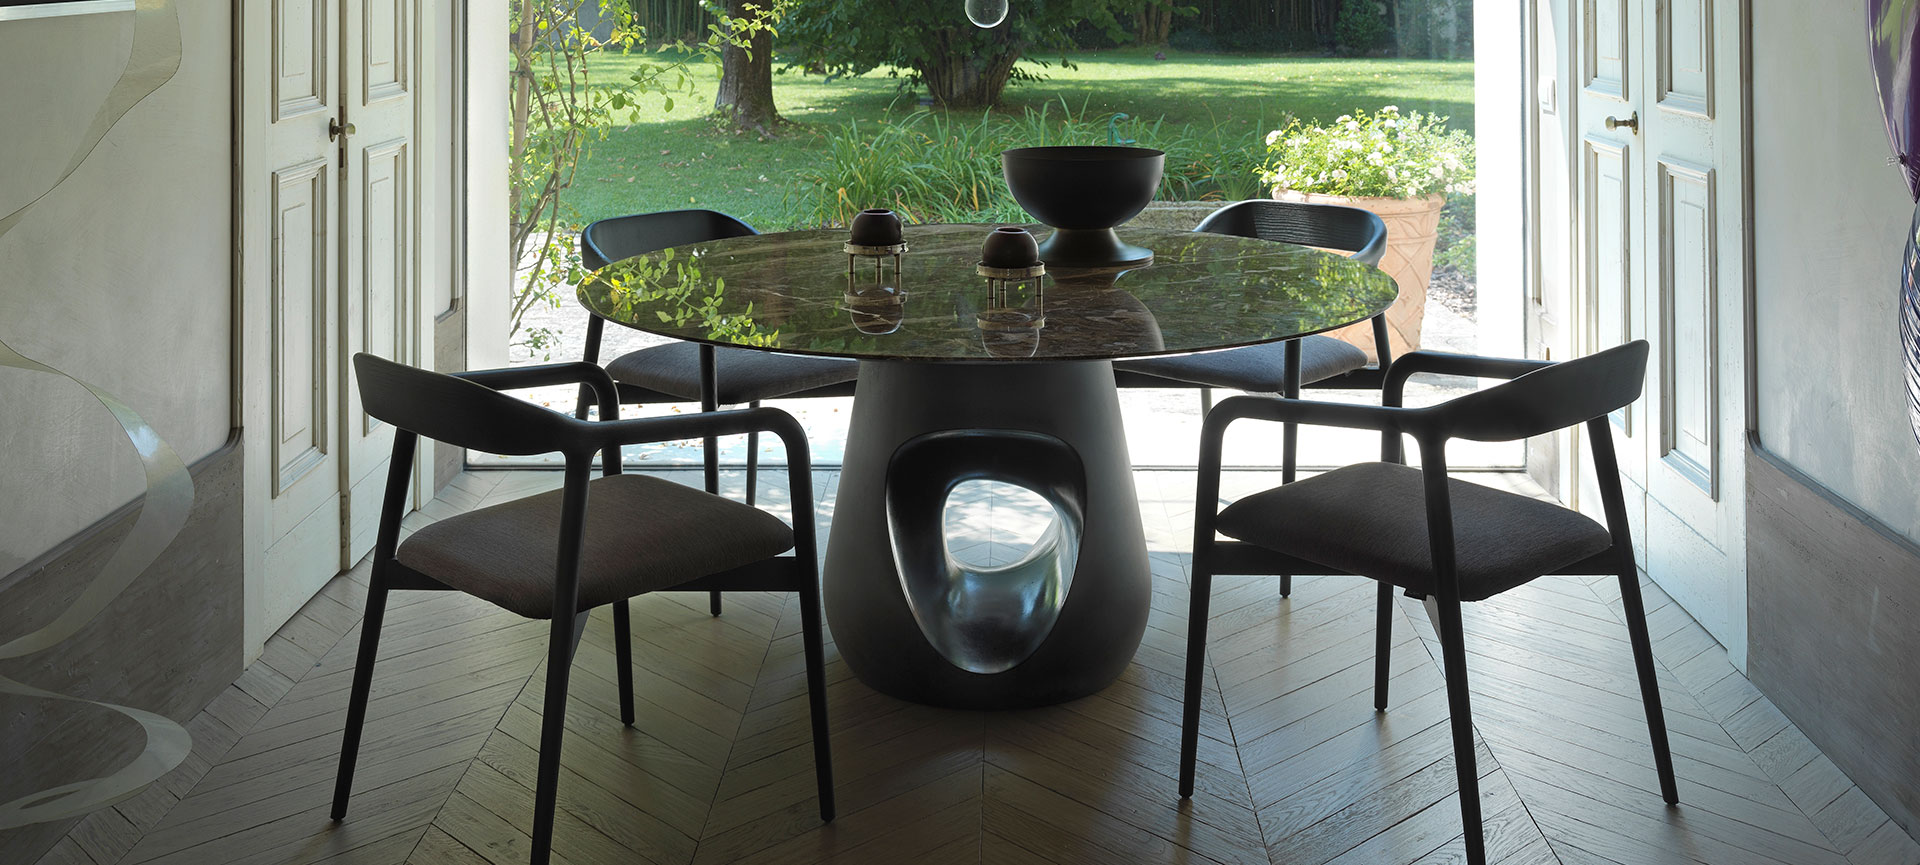 Dining room with Barbara table and Velasca chairs